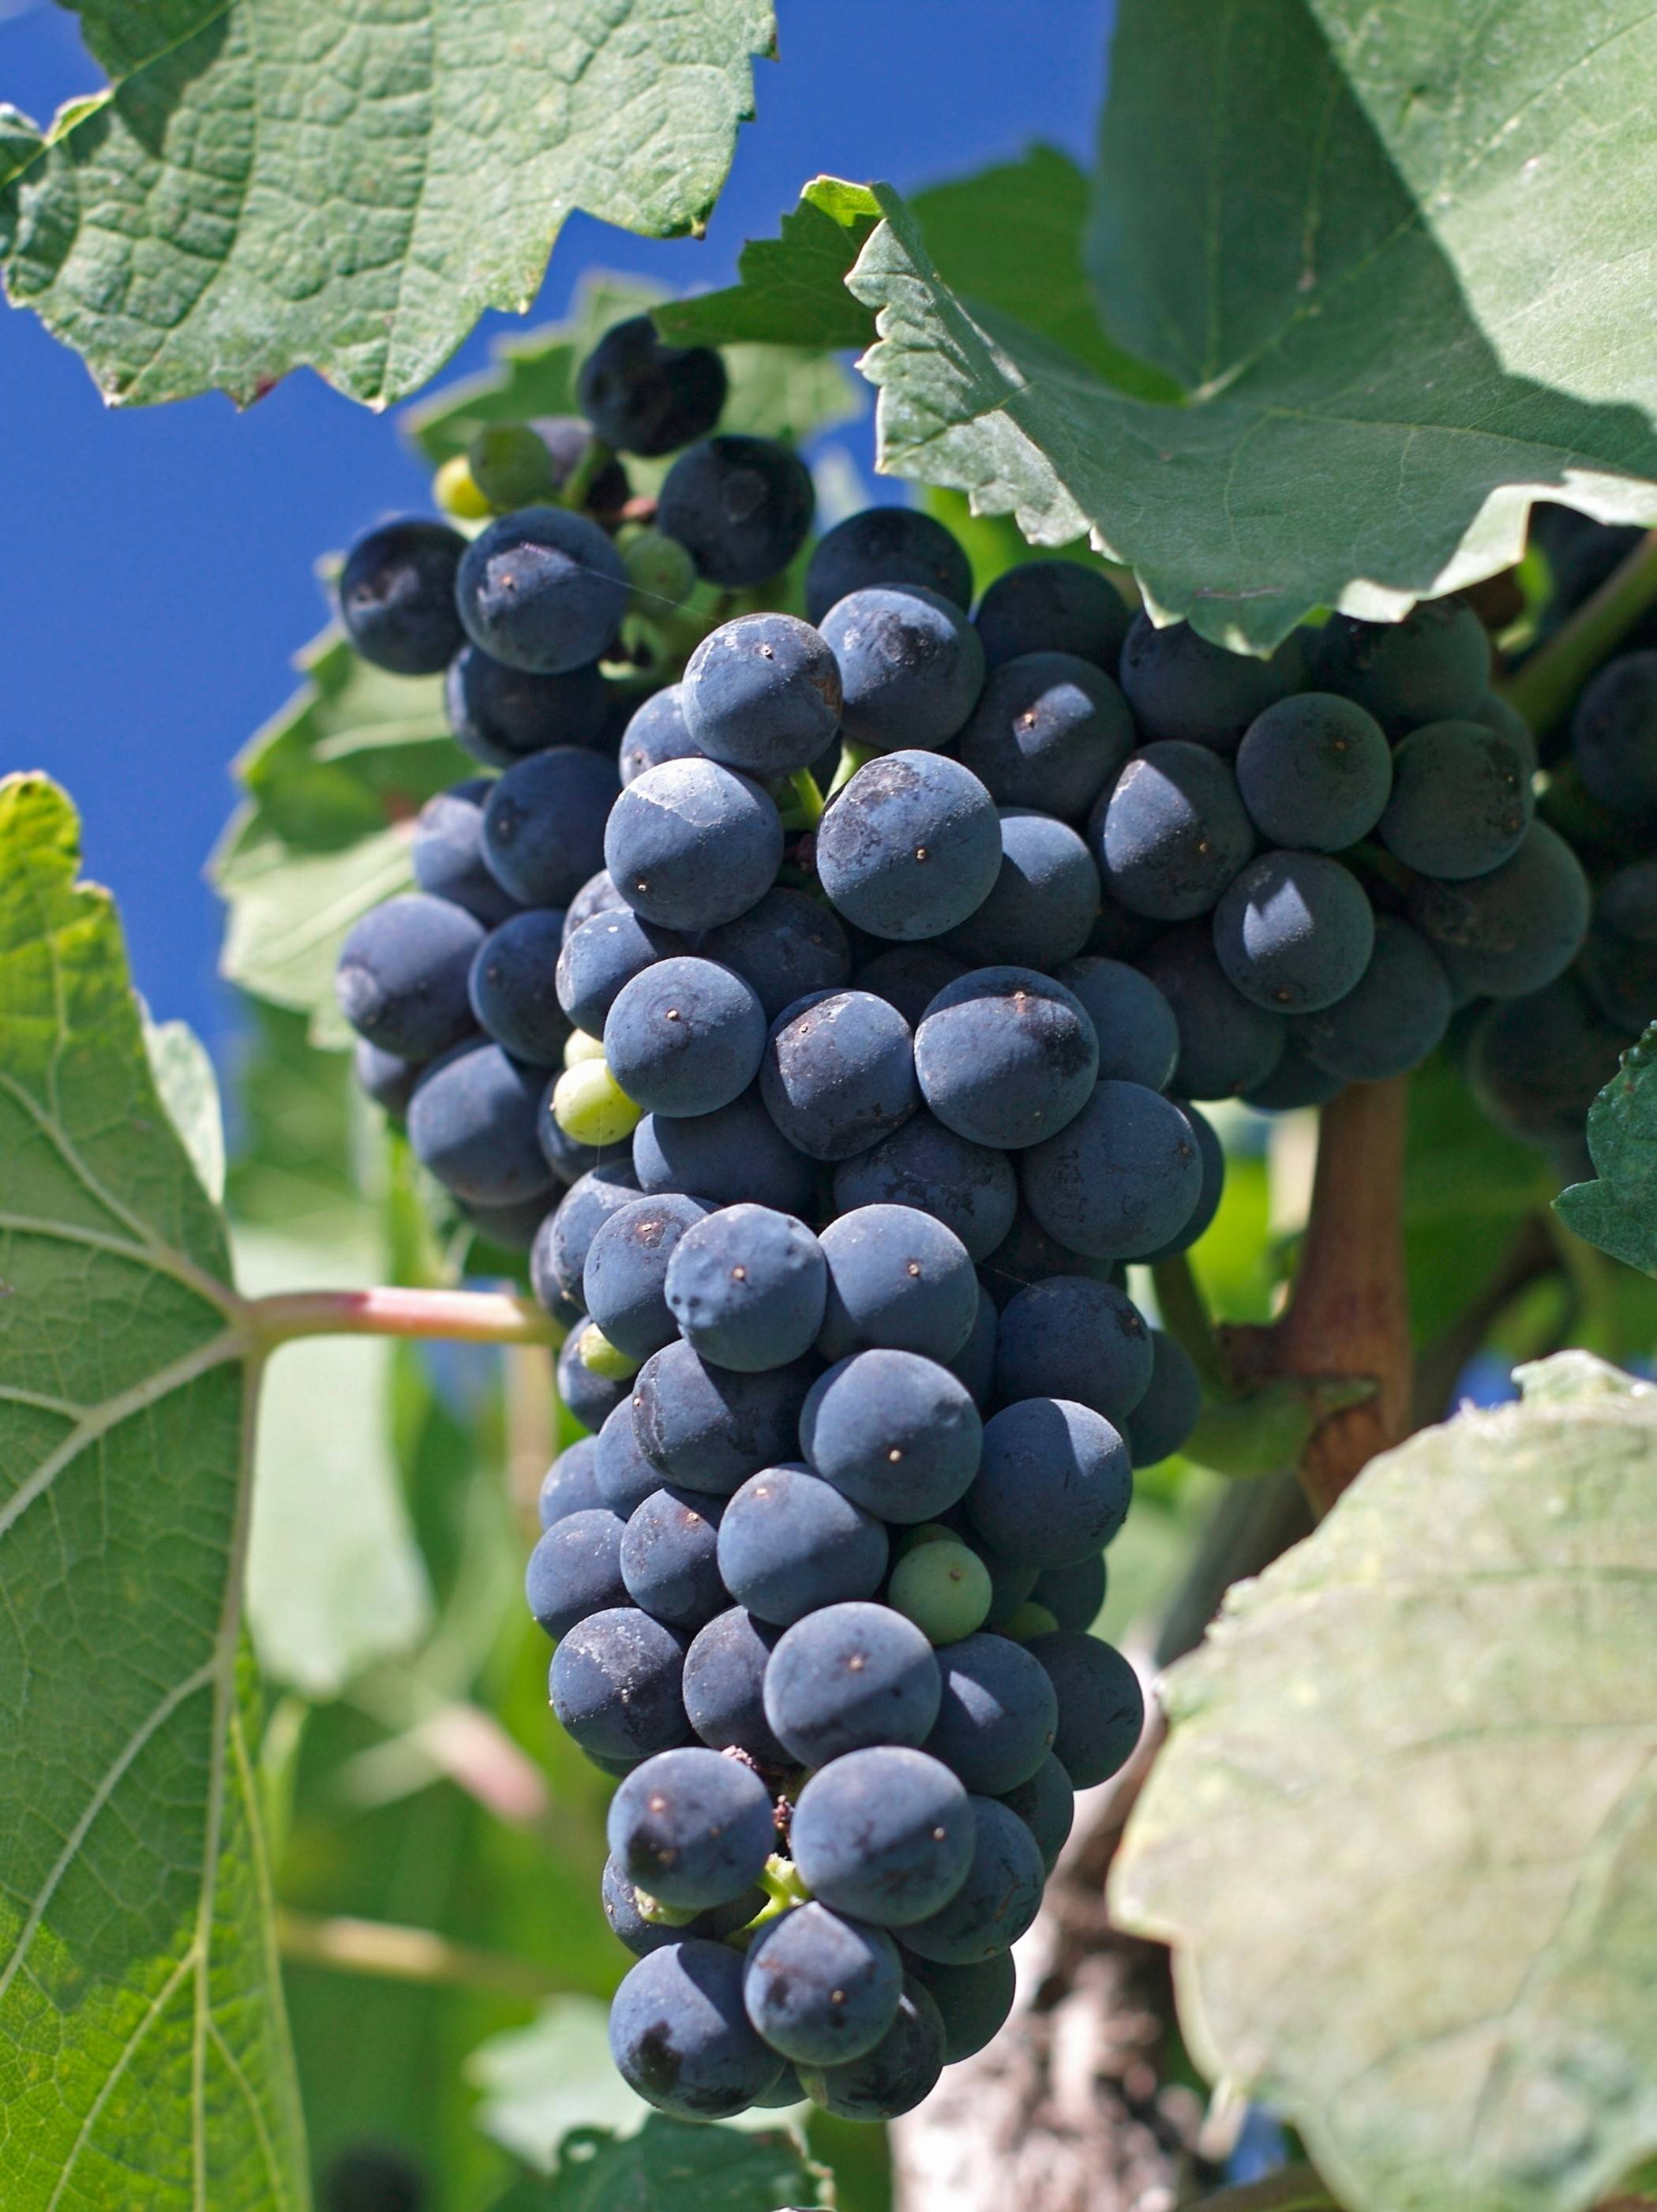 Cabernet Franc grapes hail from France's Bordeaux region and are a favorite grape of Michigan winemakers.